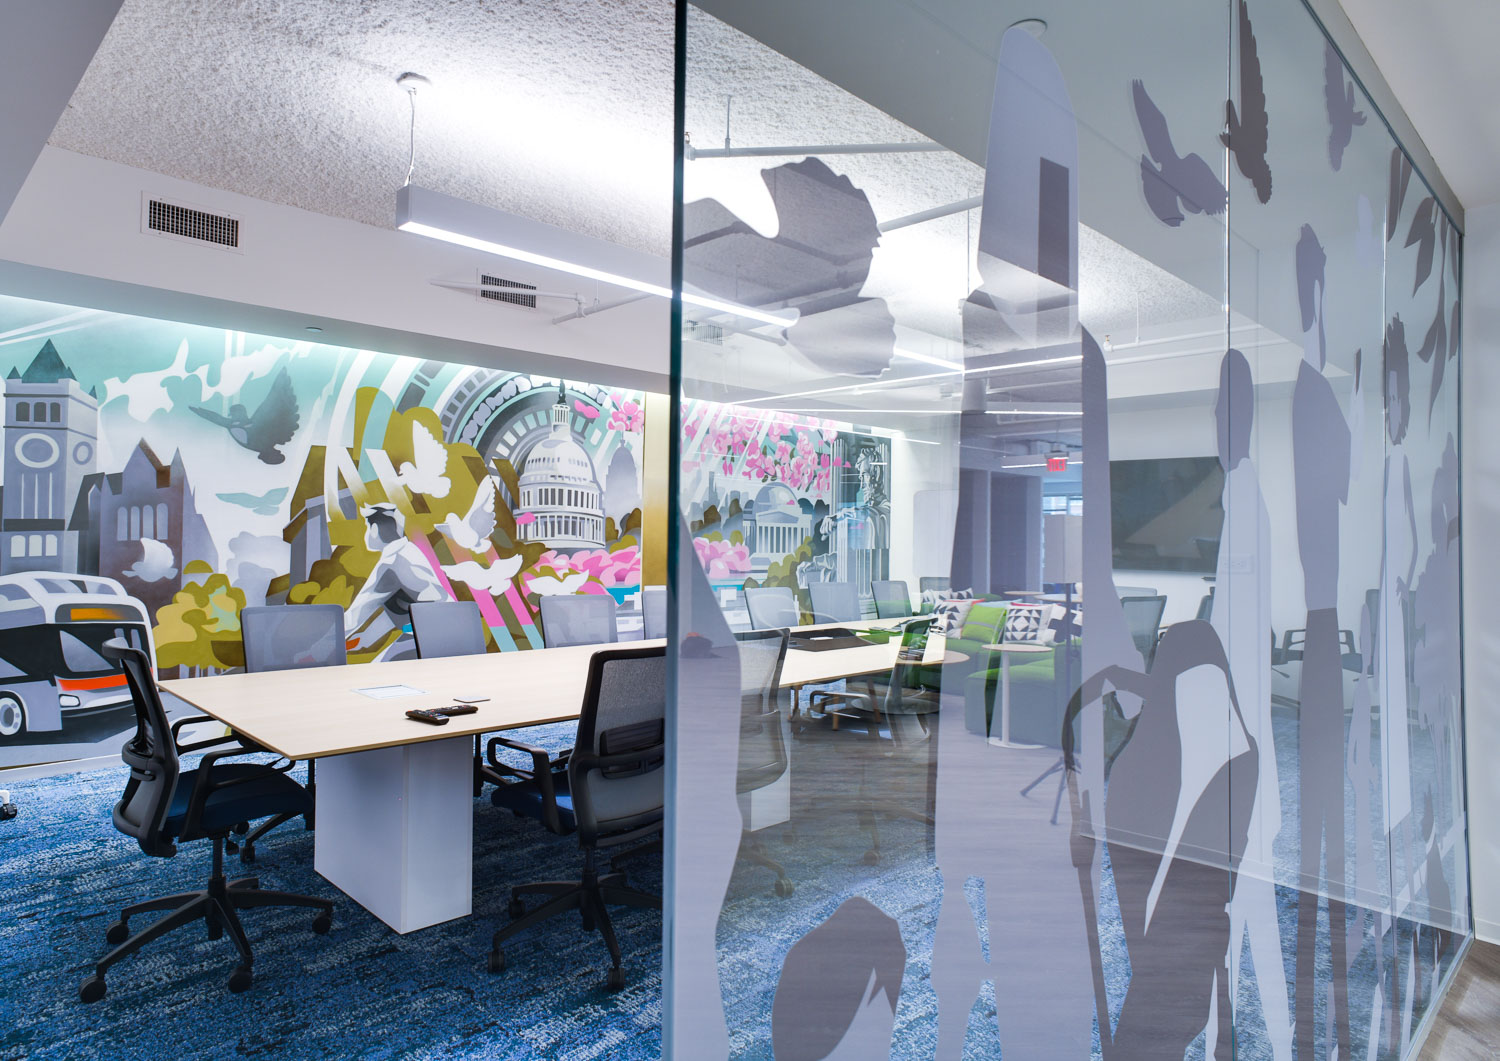 Conference mural